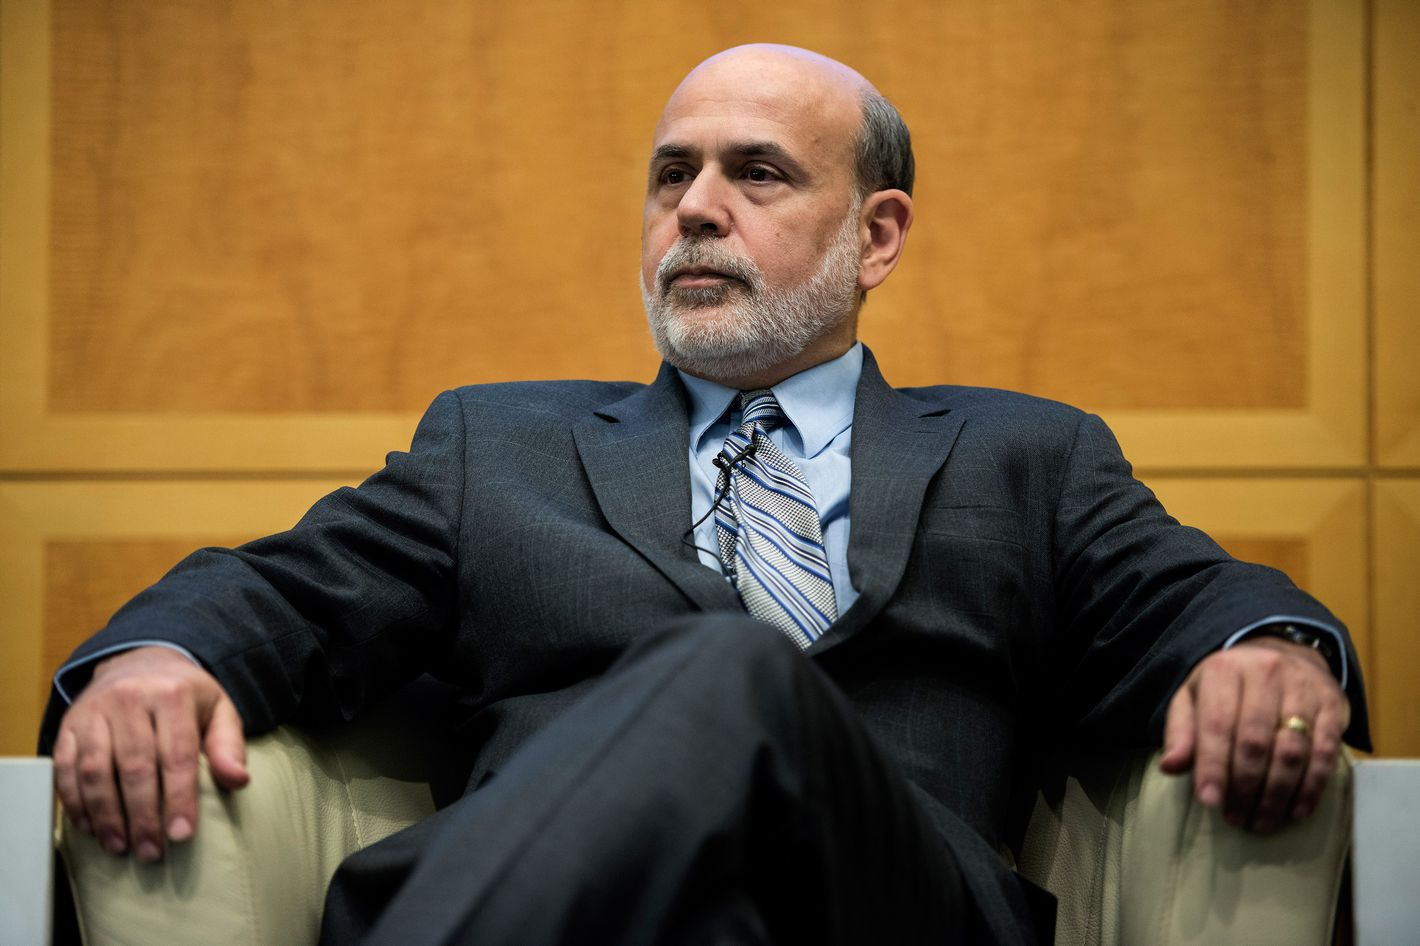 Federal Reserve Chairman Ben Bernanke listens during the Jacques Polak Research Conference at the headquarters of the International Monetary Fund on November 8, 2013 in Washington, DC. Bernanke and others attended the event to speak about the economy and the financial crisis.